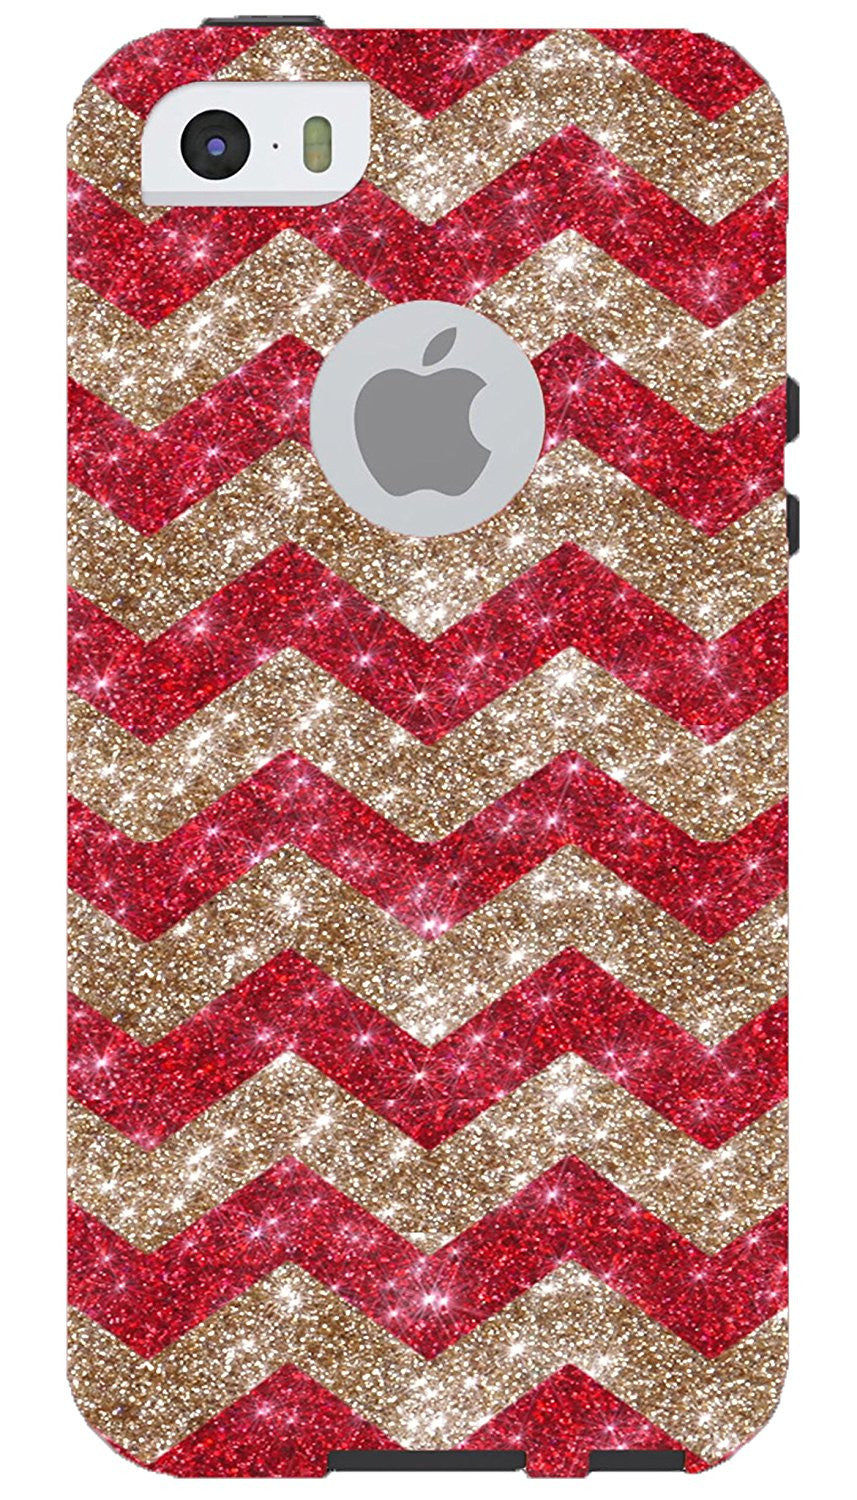 detailed look 6f2a3 4d940 iPhone 5S Case - OtterBox Commuter Series - Retail Packaging - Glitter Gold  Small Chevron Red/Dark Grey